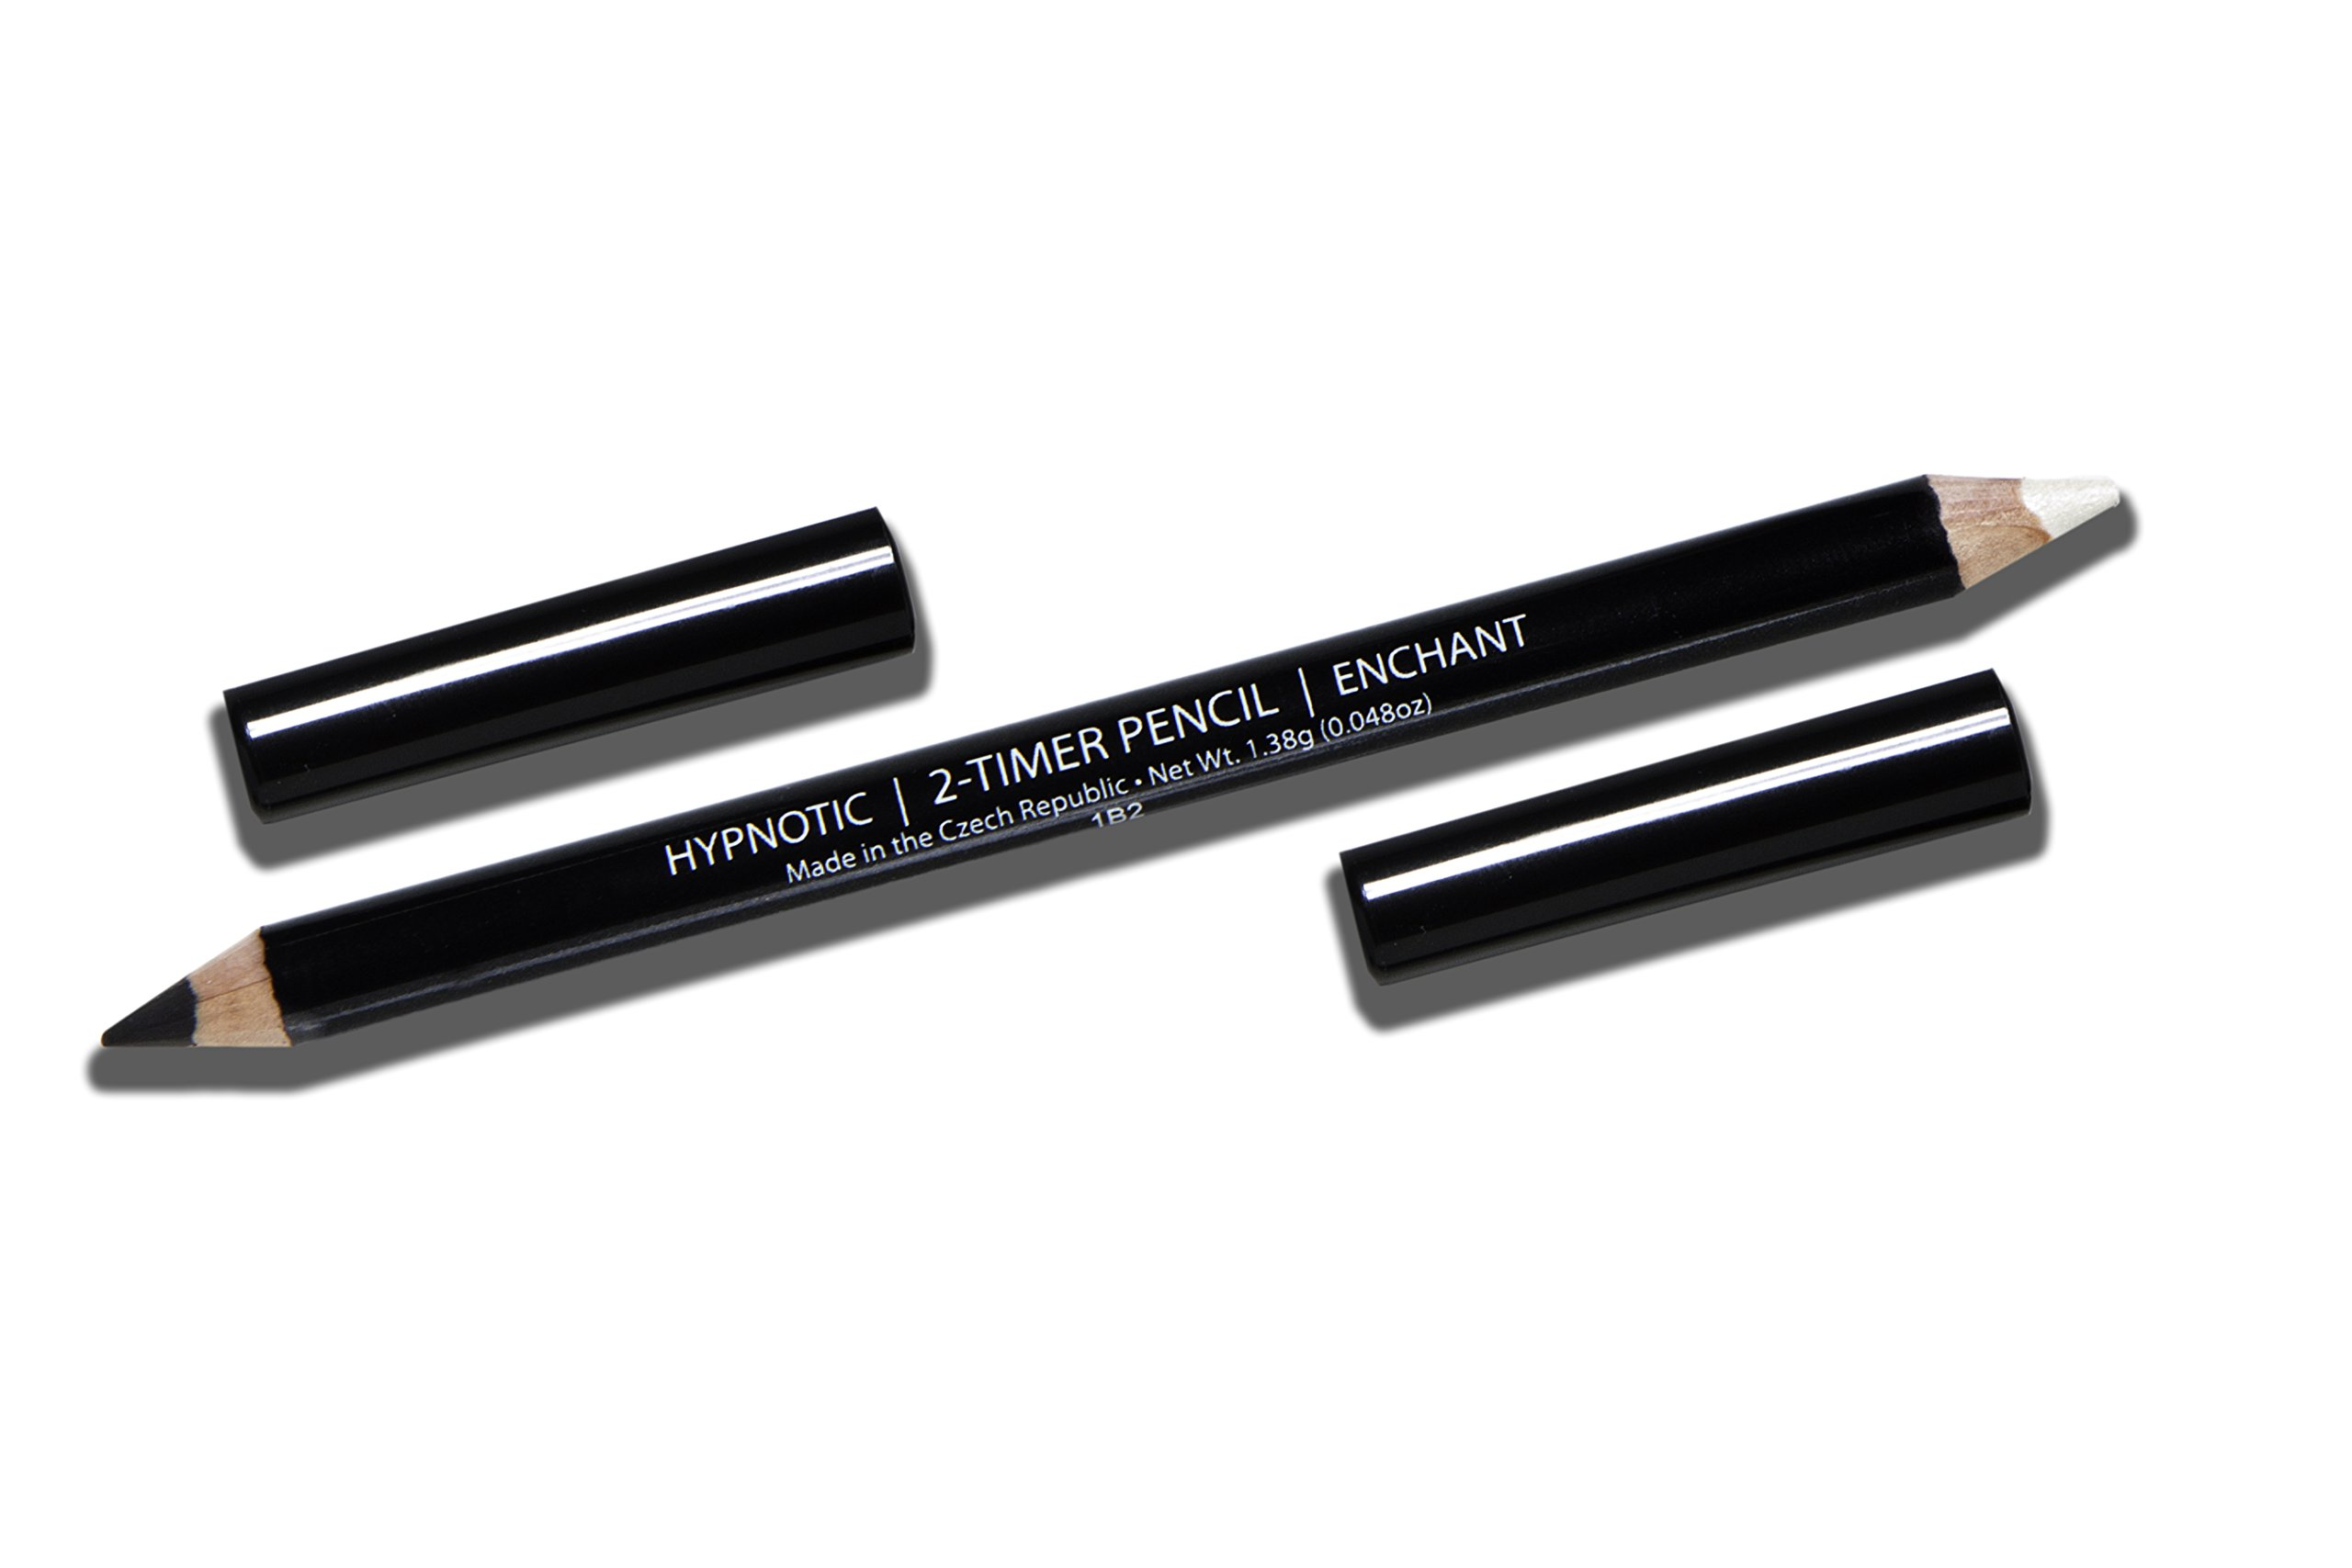 Long Lasting Duo Eye Liner and Highlighter Pencil - Alexis Vogel 2 Timer Pencil: Hypnotic